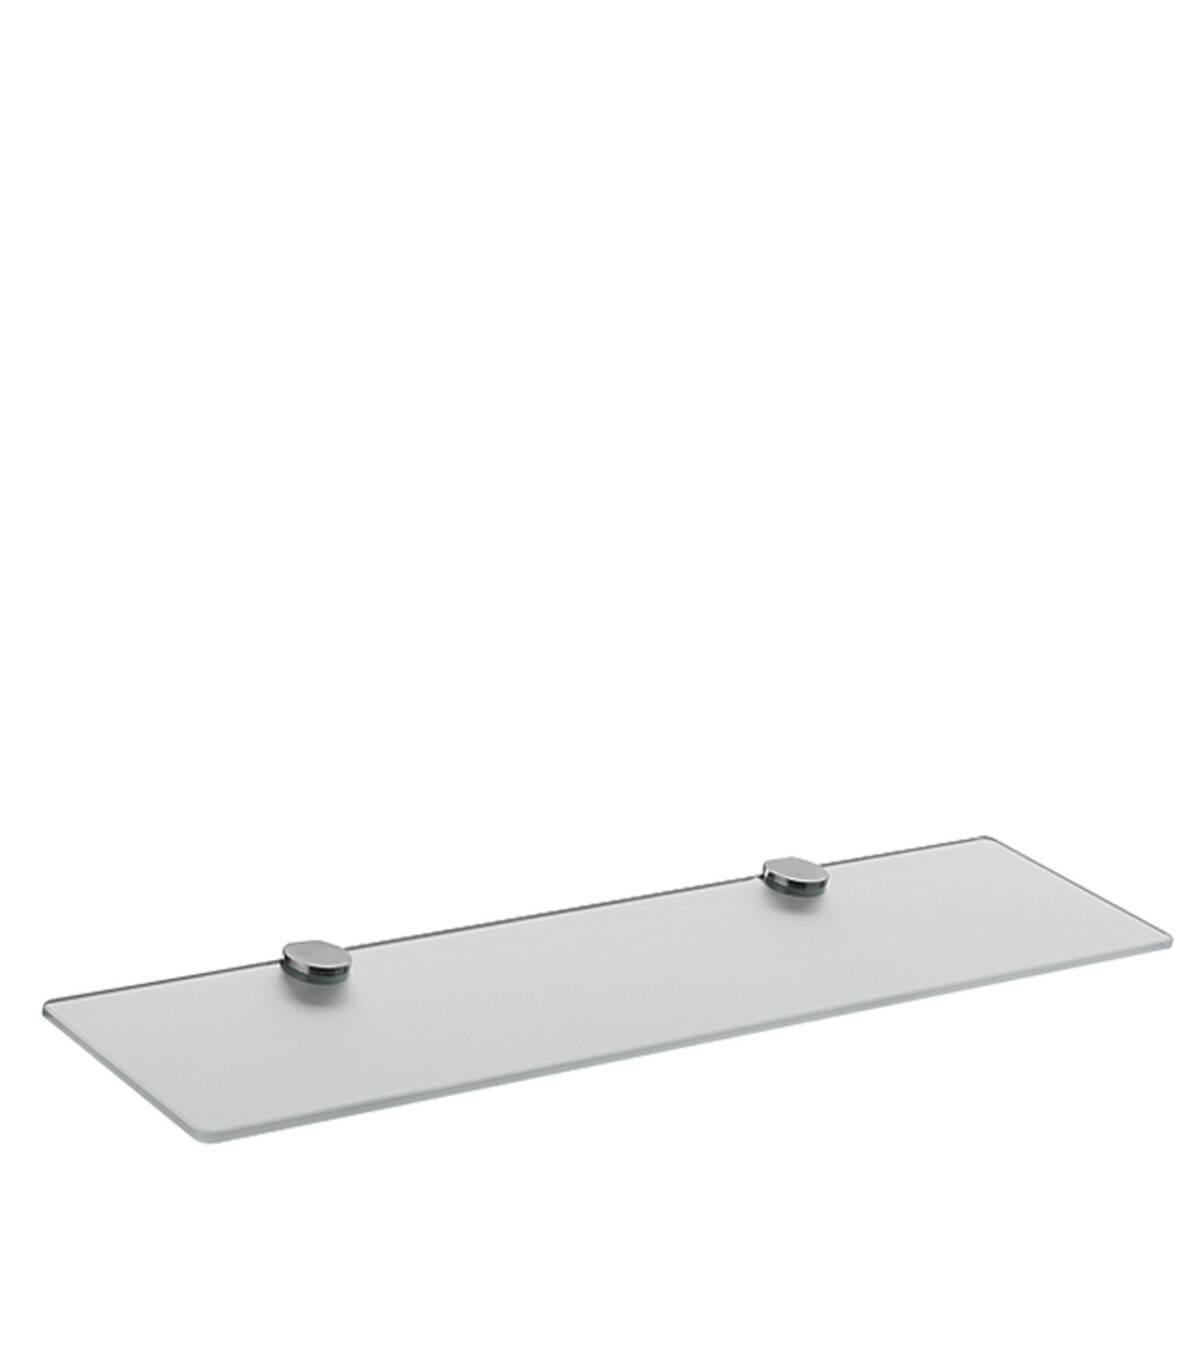 Glass shelf, Chrome, 41550000